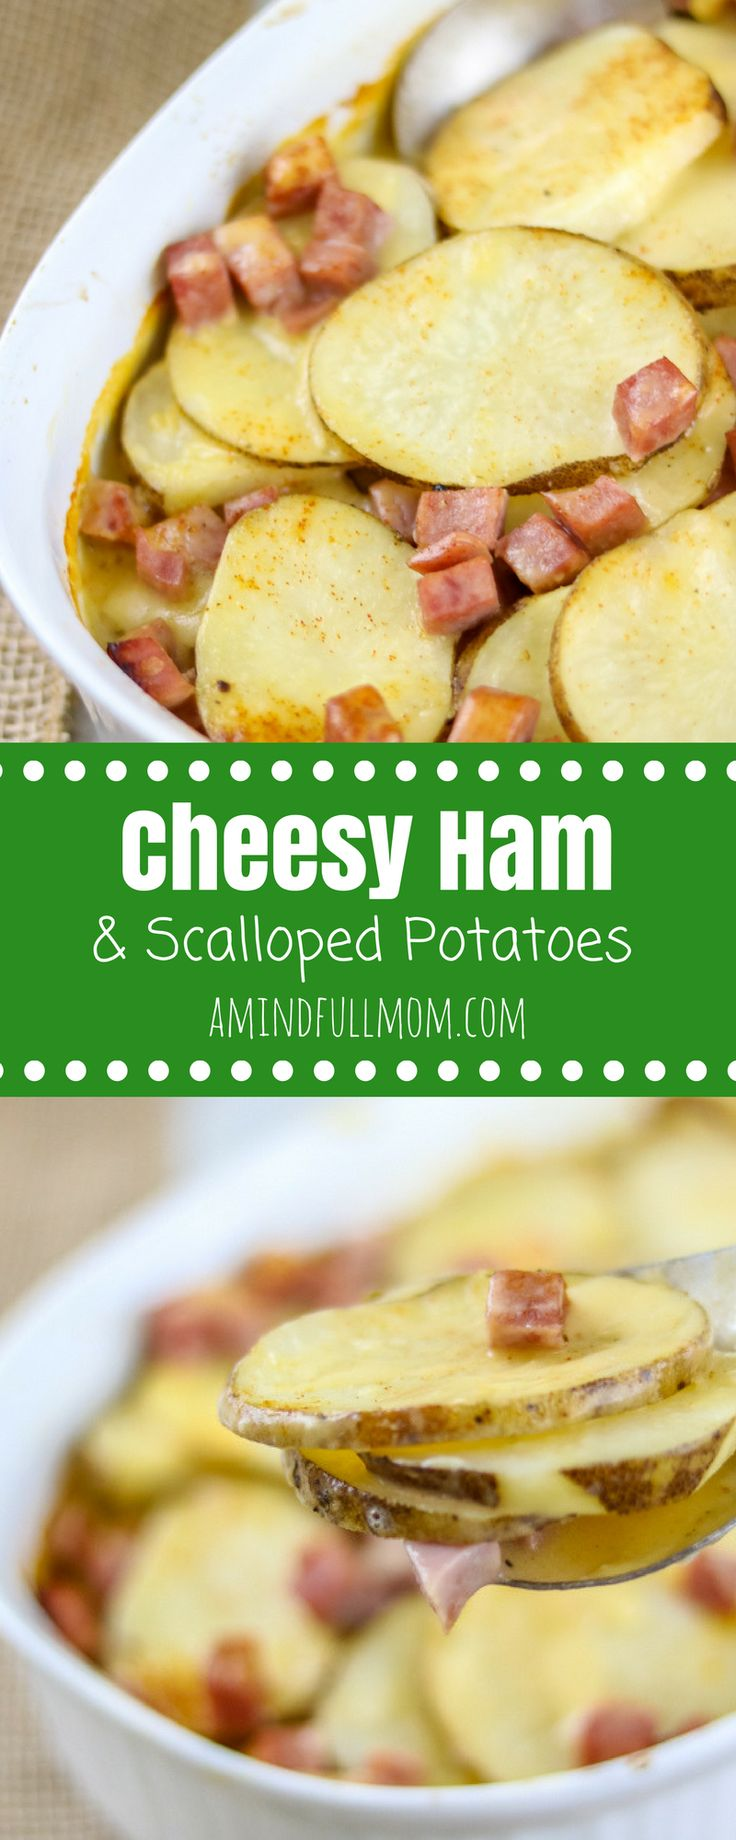 Cheesy Ham and Scalloped Potatoes: A rustic dish madew ith sliced potatoes, leftover ham and a homemade cheese sauce.